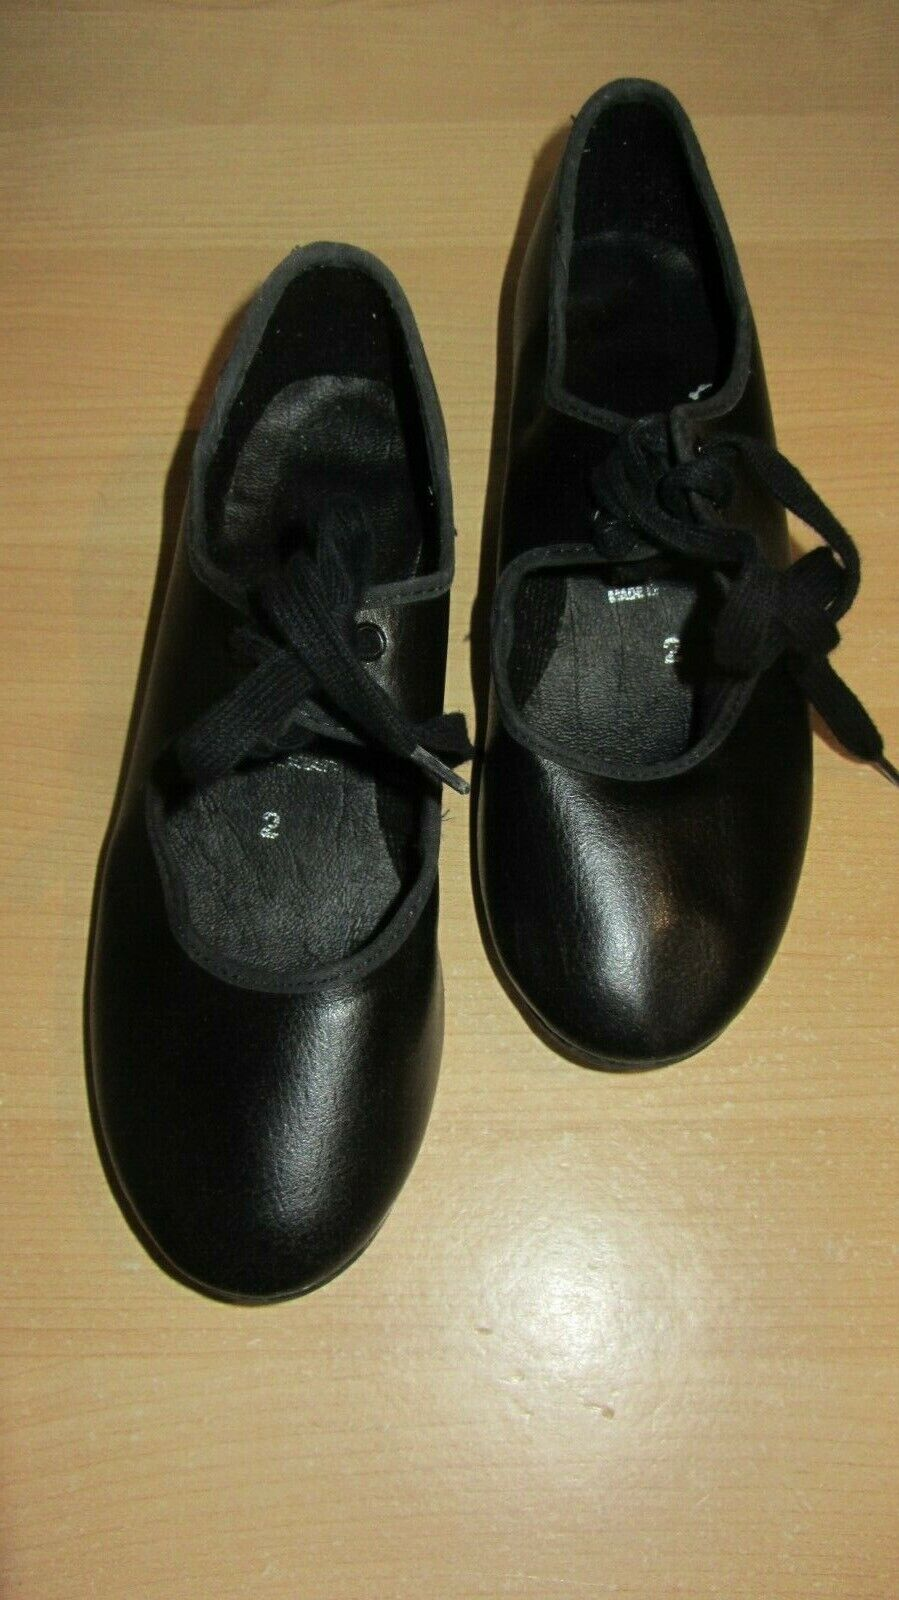 GIRLS *ROCH VALLEY* Black With TOE Taps Size 2